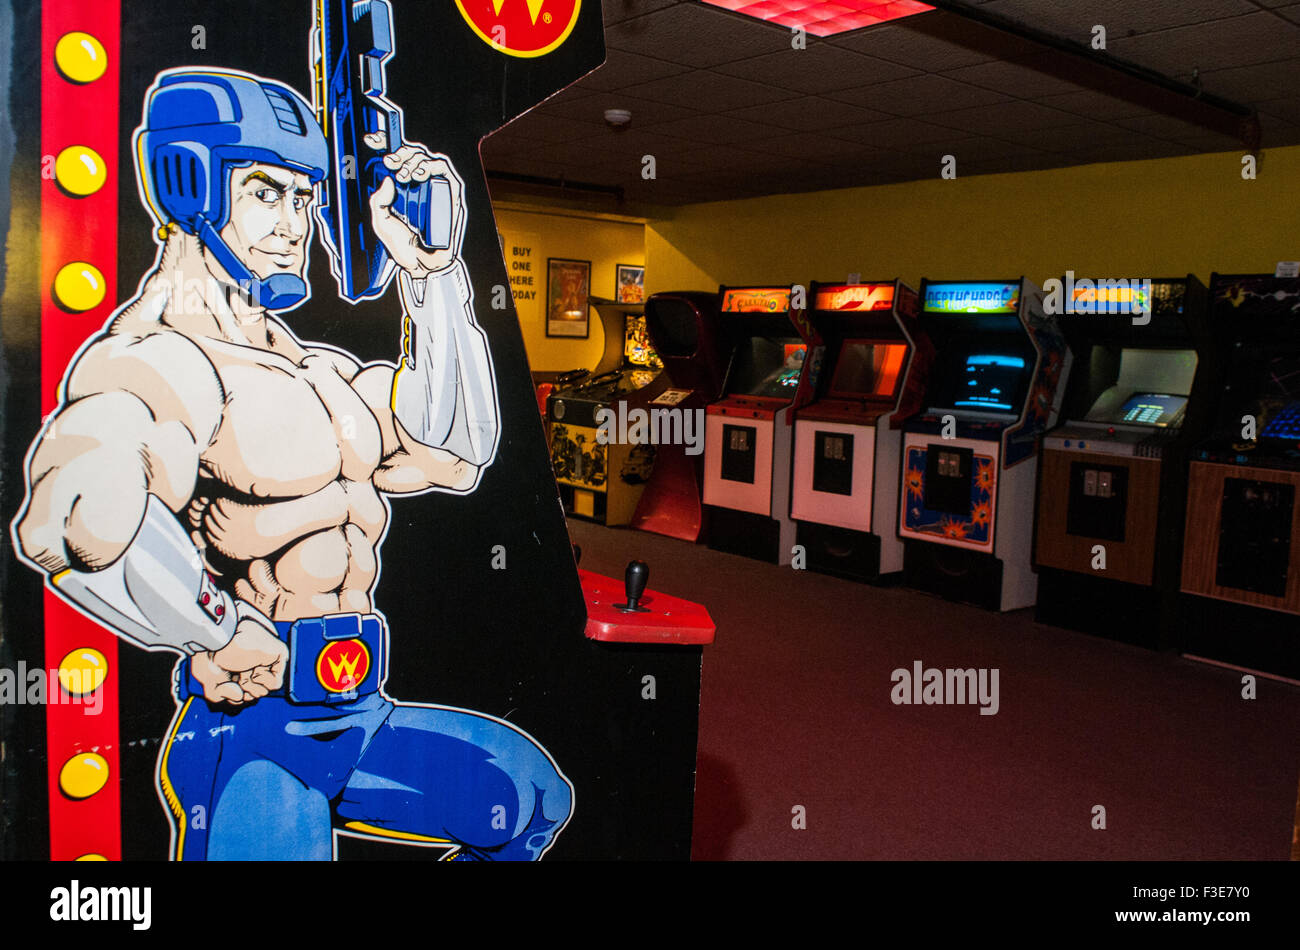 Video games inside the American Classic Arcade Museum in Laconia, New Hampshire. - Stock Image